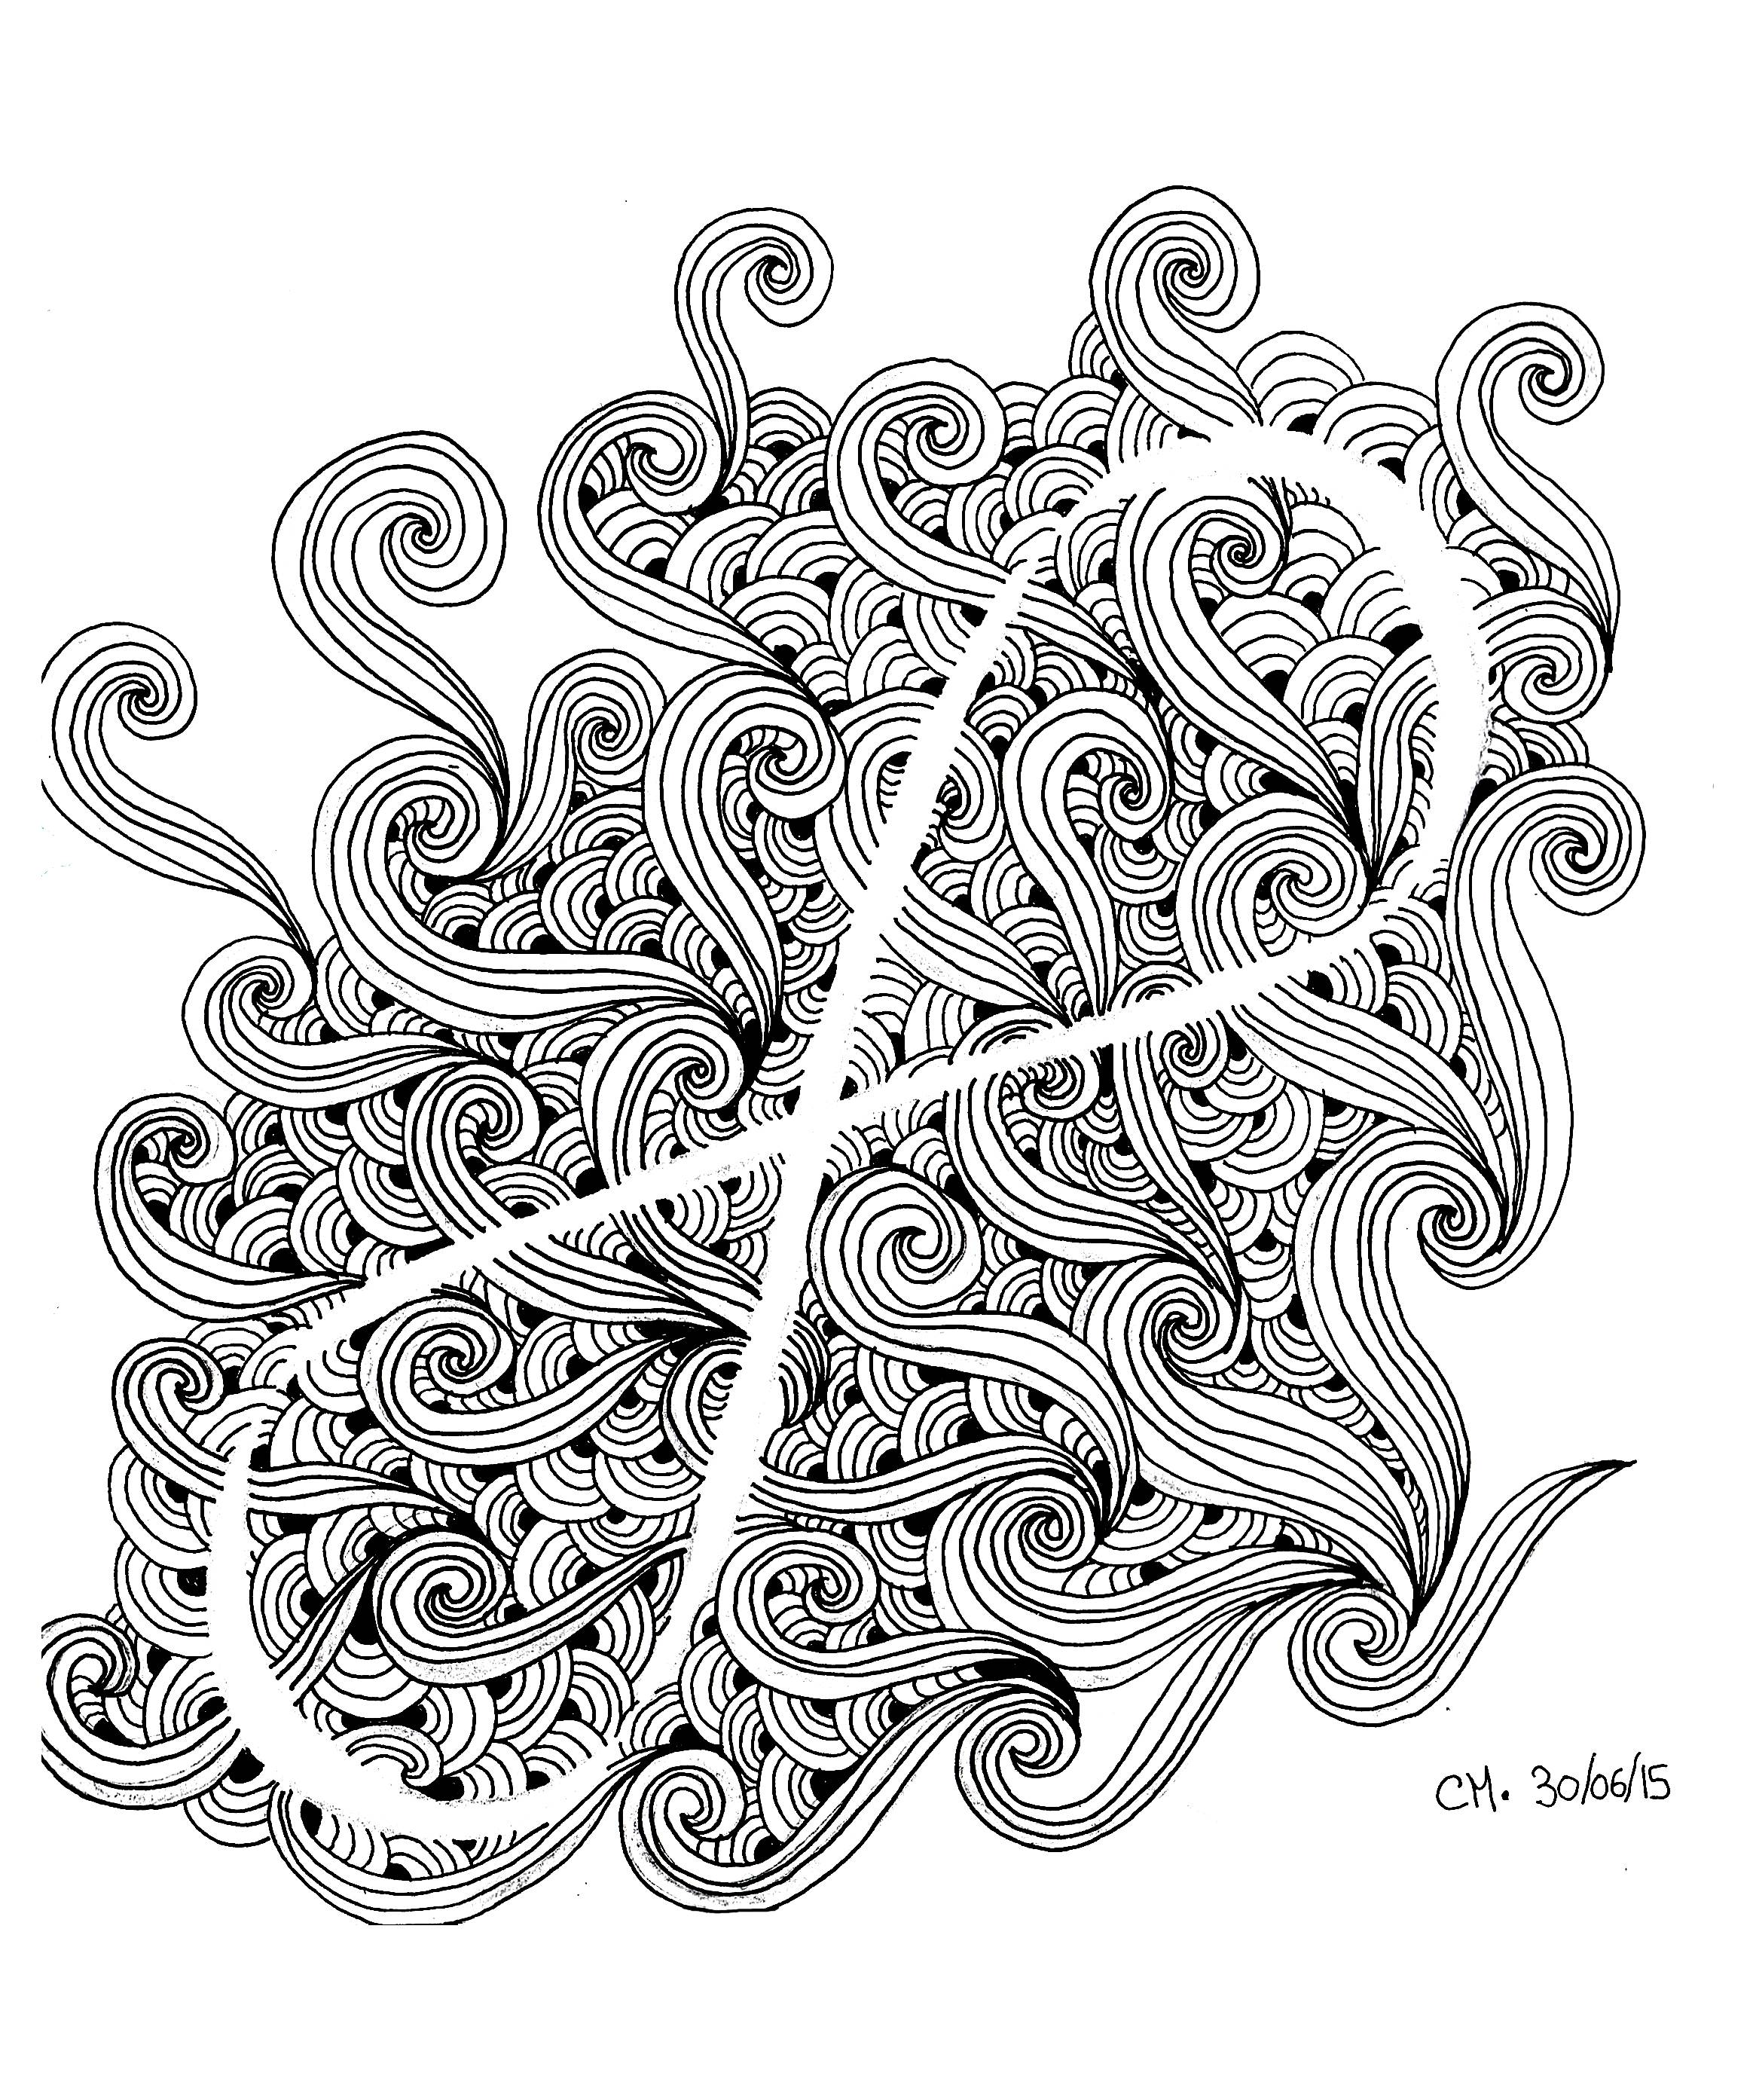 Anti stress colouring pages for adults -  Infini Doodle Exclusive Coloring Page See The Original Work From The Gallery